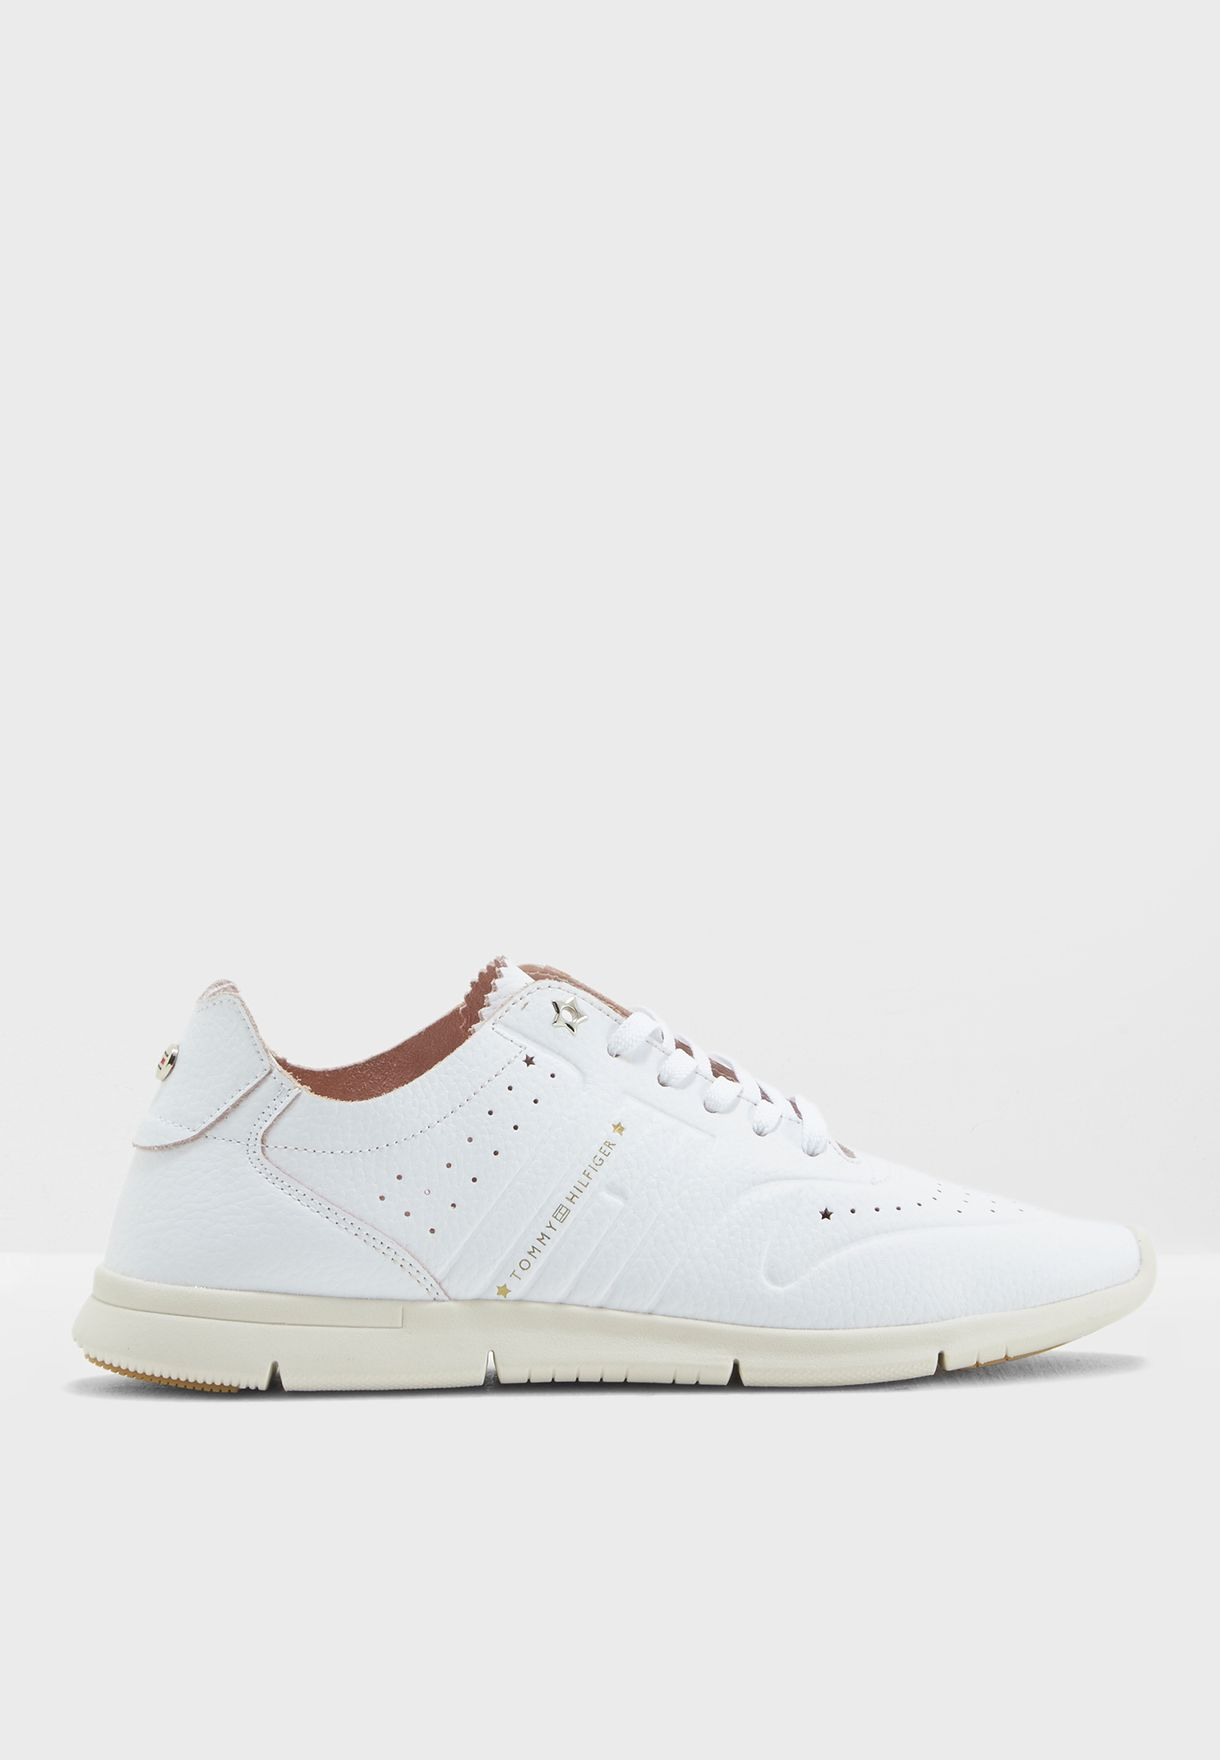 a4faaf6f2249 Shop Tommy Hilfiger white Leather Light Weight Sneaker FW0FW03017 ...